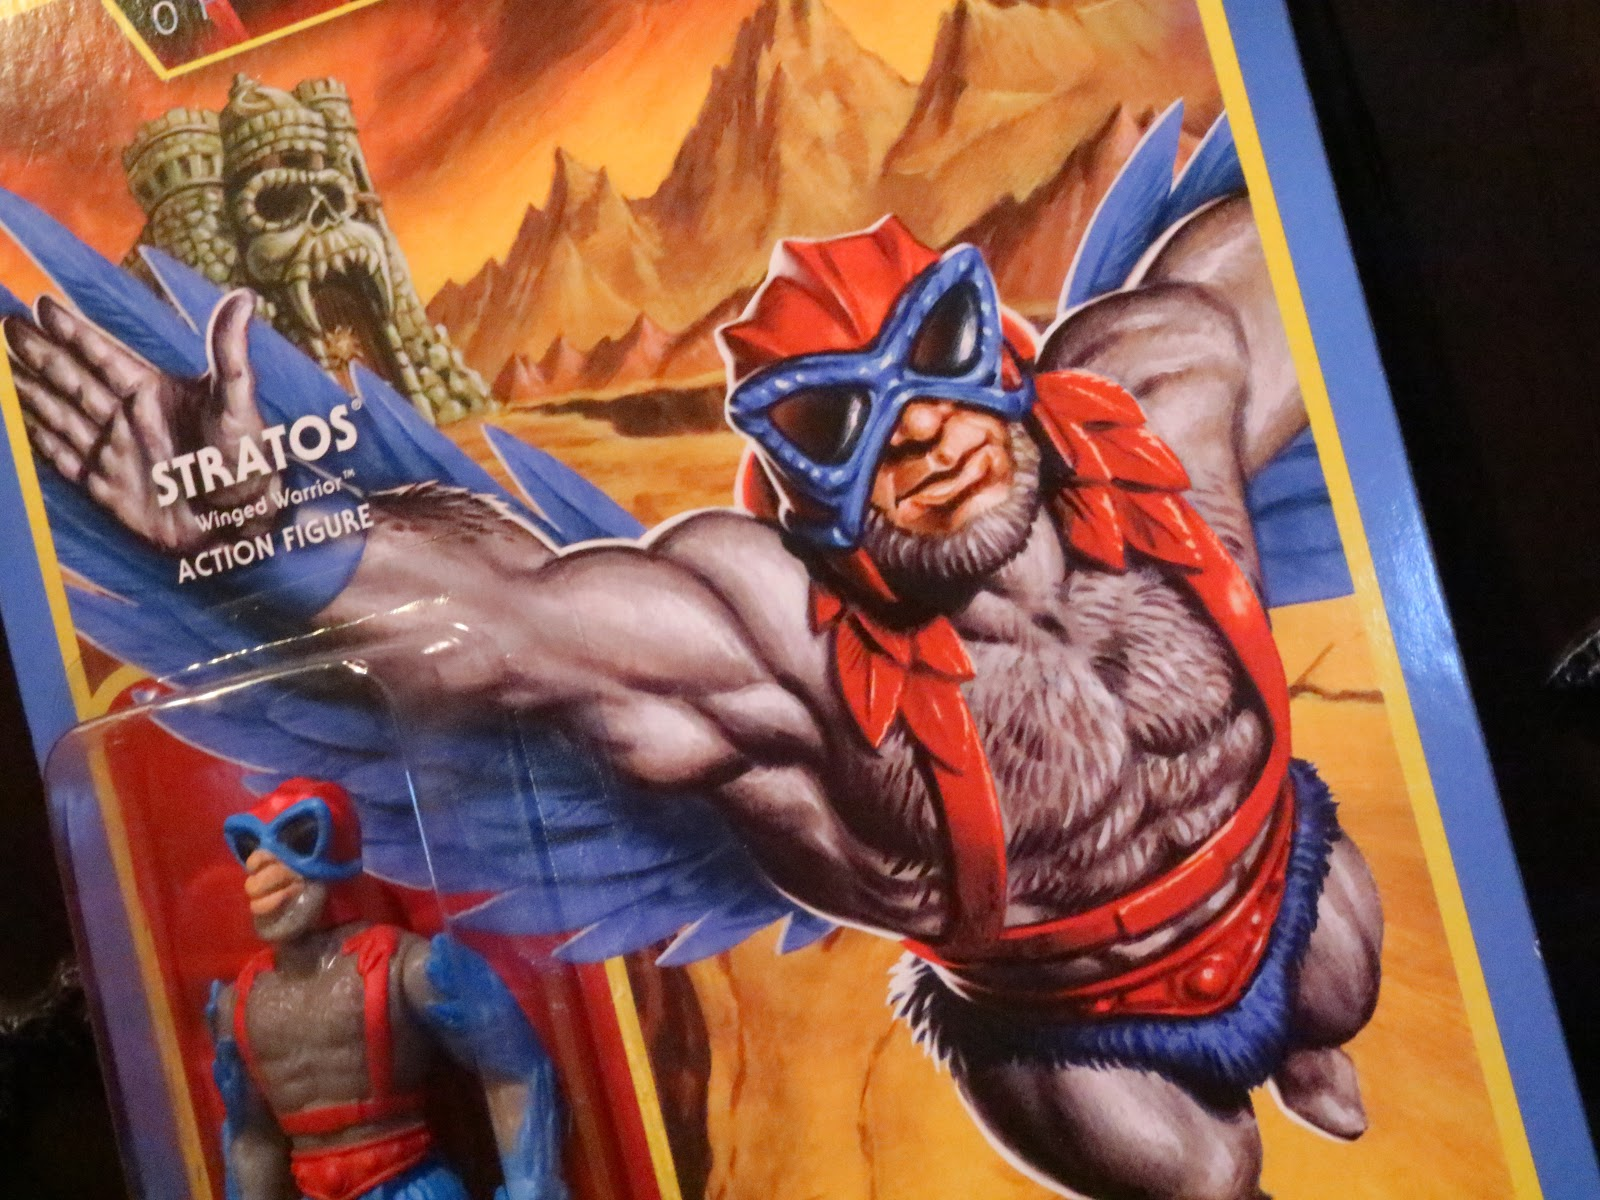 Stratos Winged Warrior Masters of the Universe MOTU Super 7 Action Figure